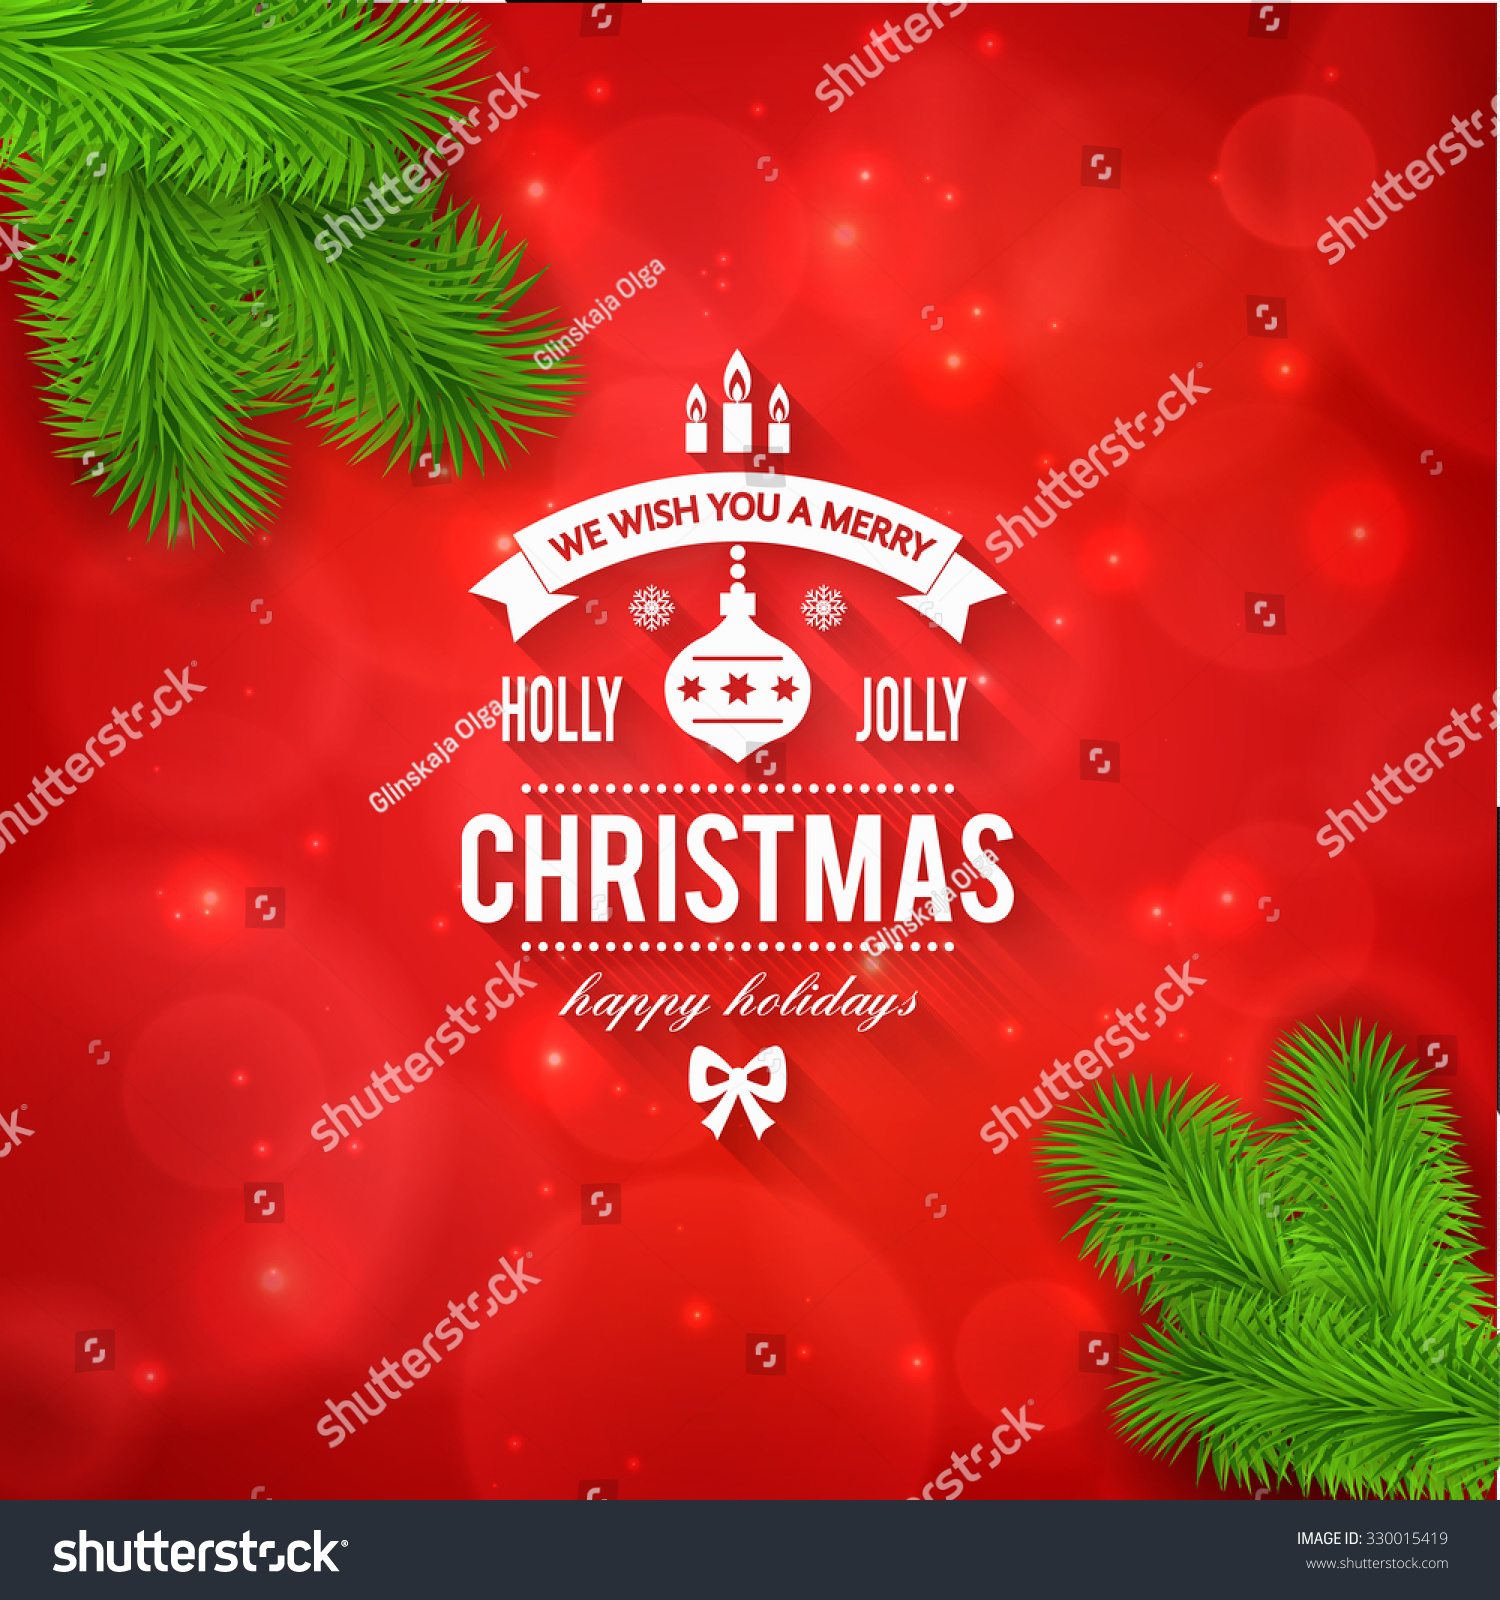 Merry Christmas Greetings Logo On Colorful Stock Vector 2018